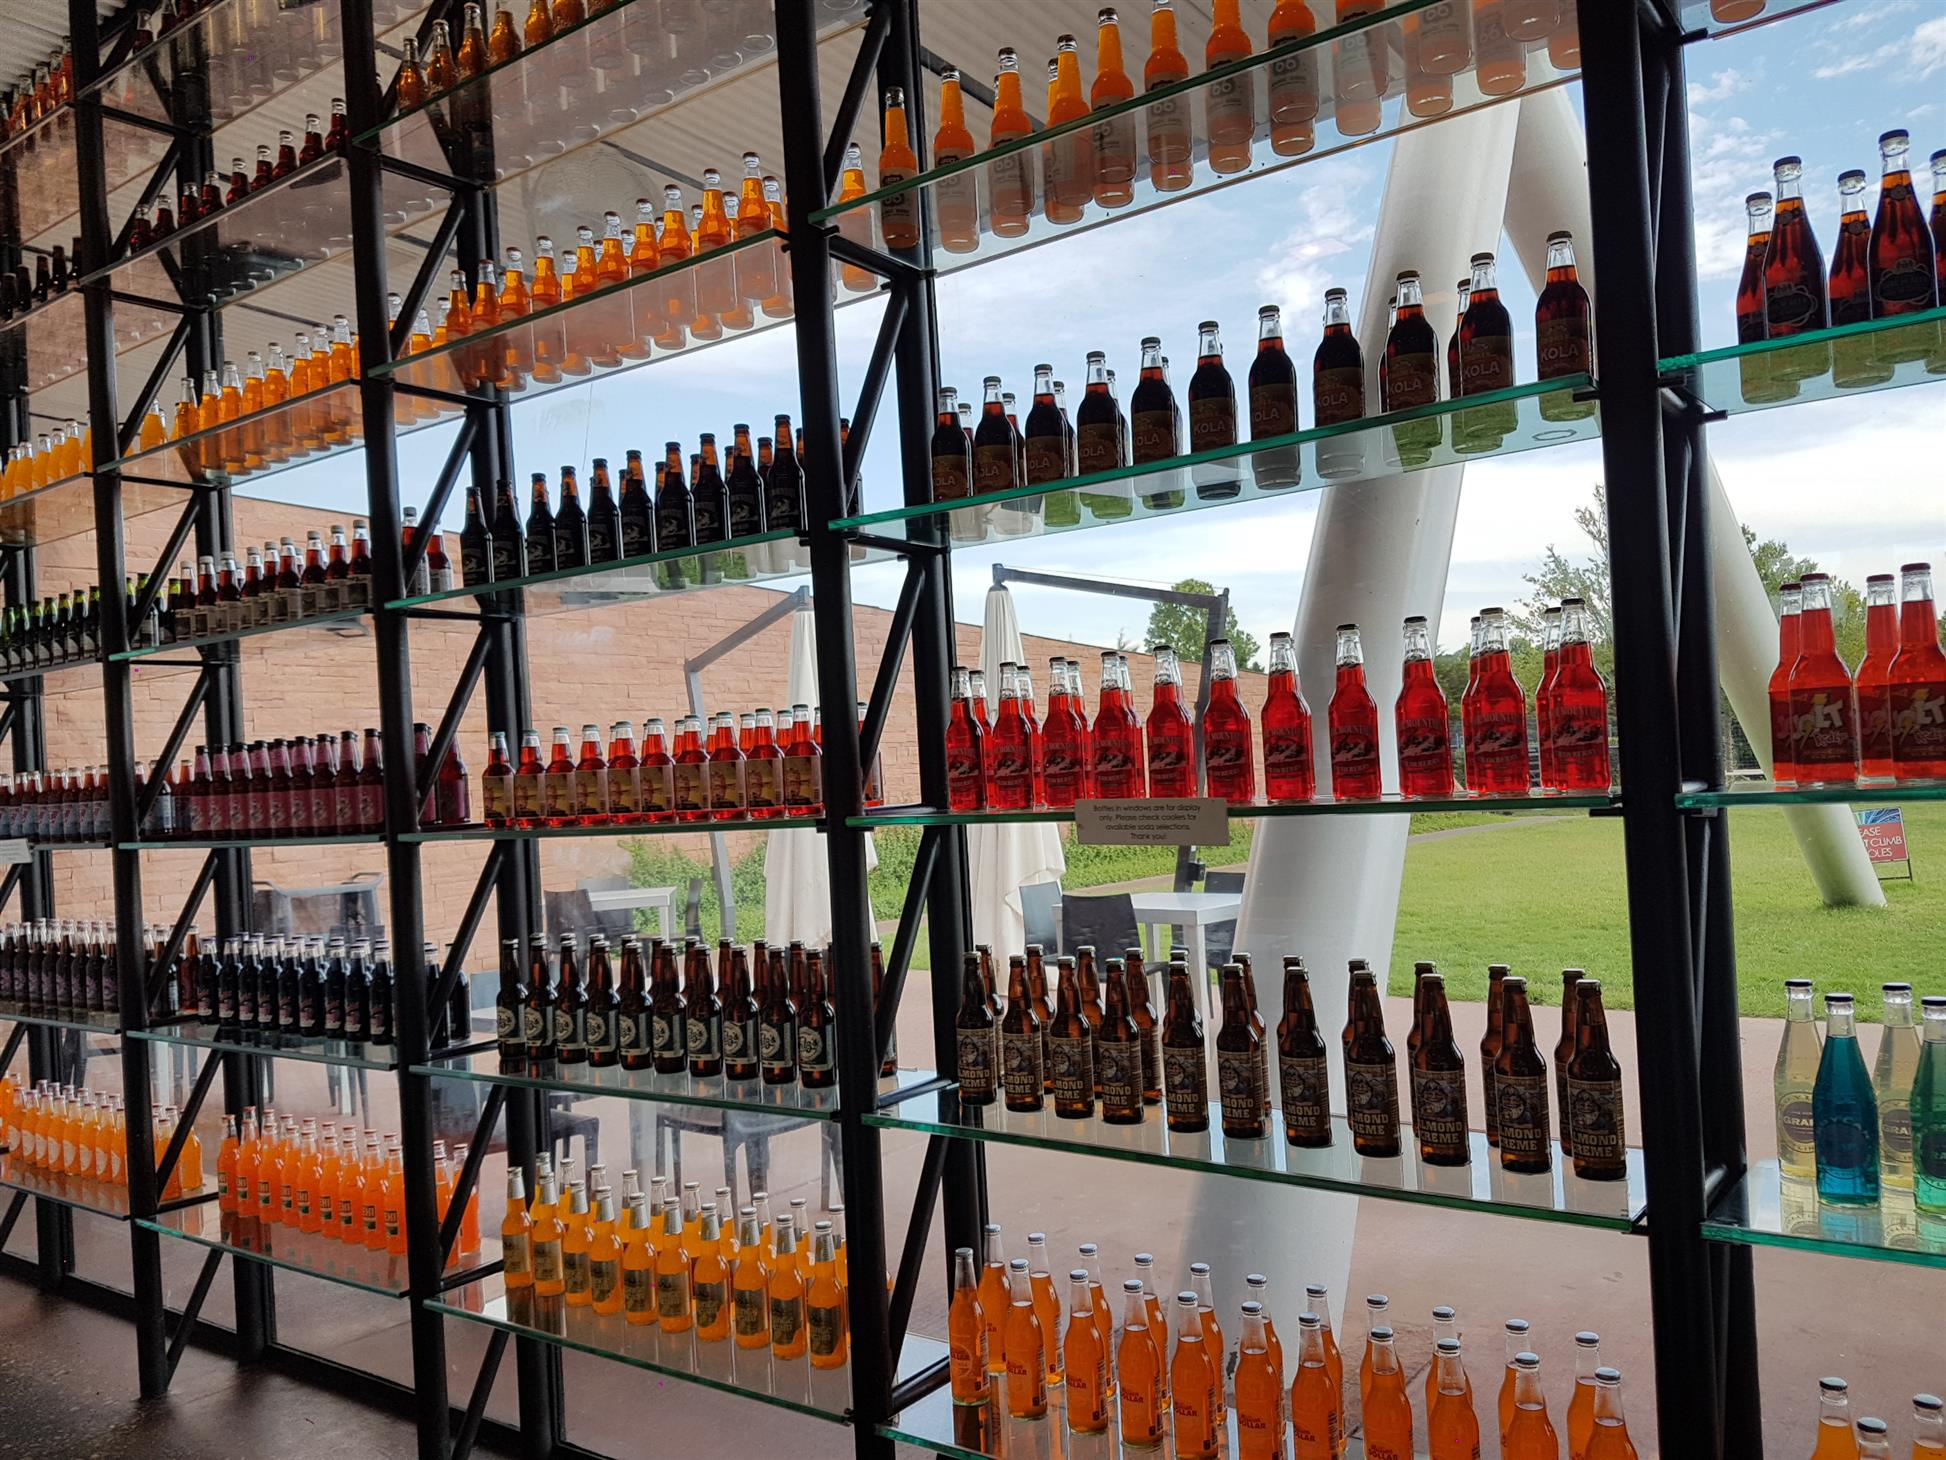 Pops, they have more than 700 different types of bottled soda!